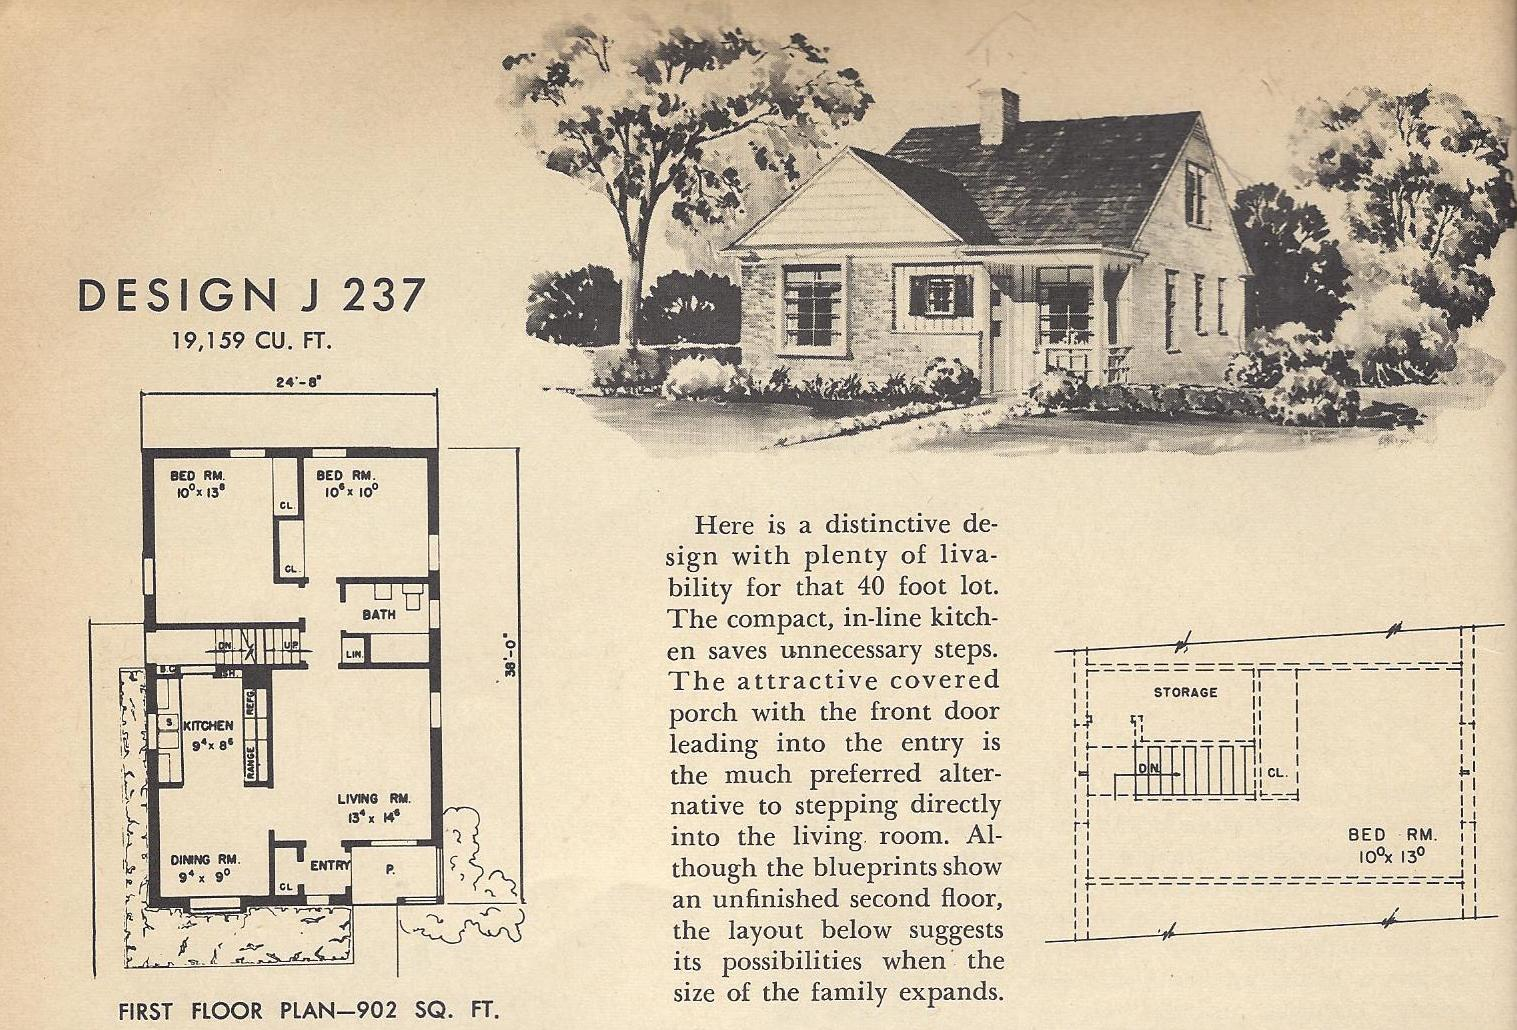 Vintage house plans j237 antique alter ego for New home plans that look old